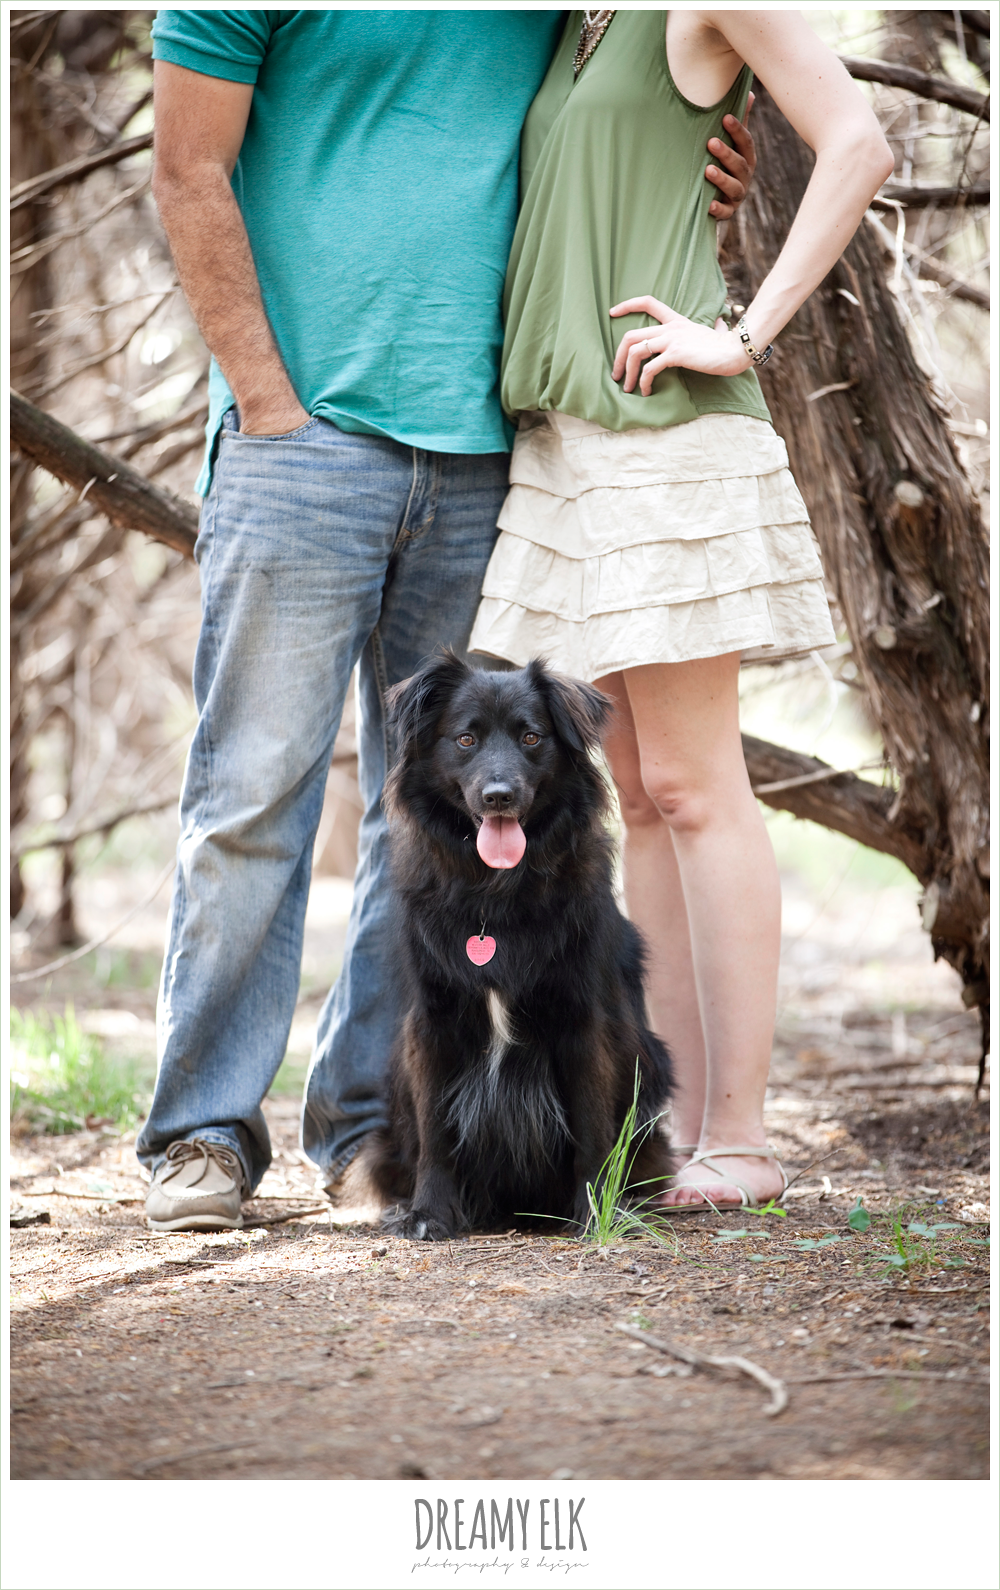 6 mallory and esteban engagements, walnut creek park, austin, texas